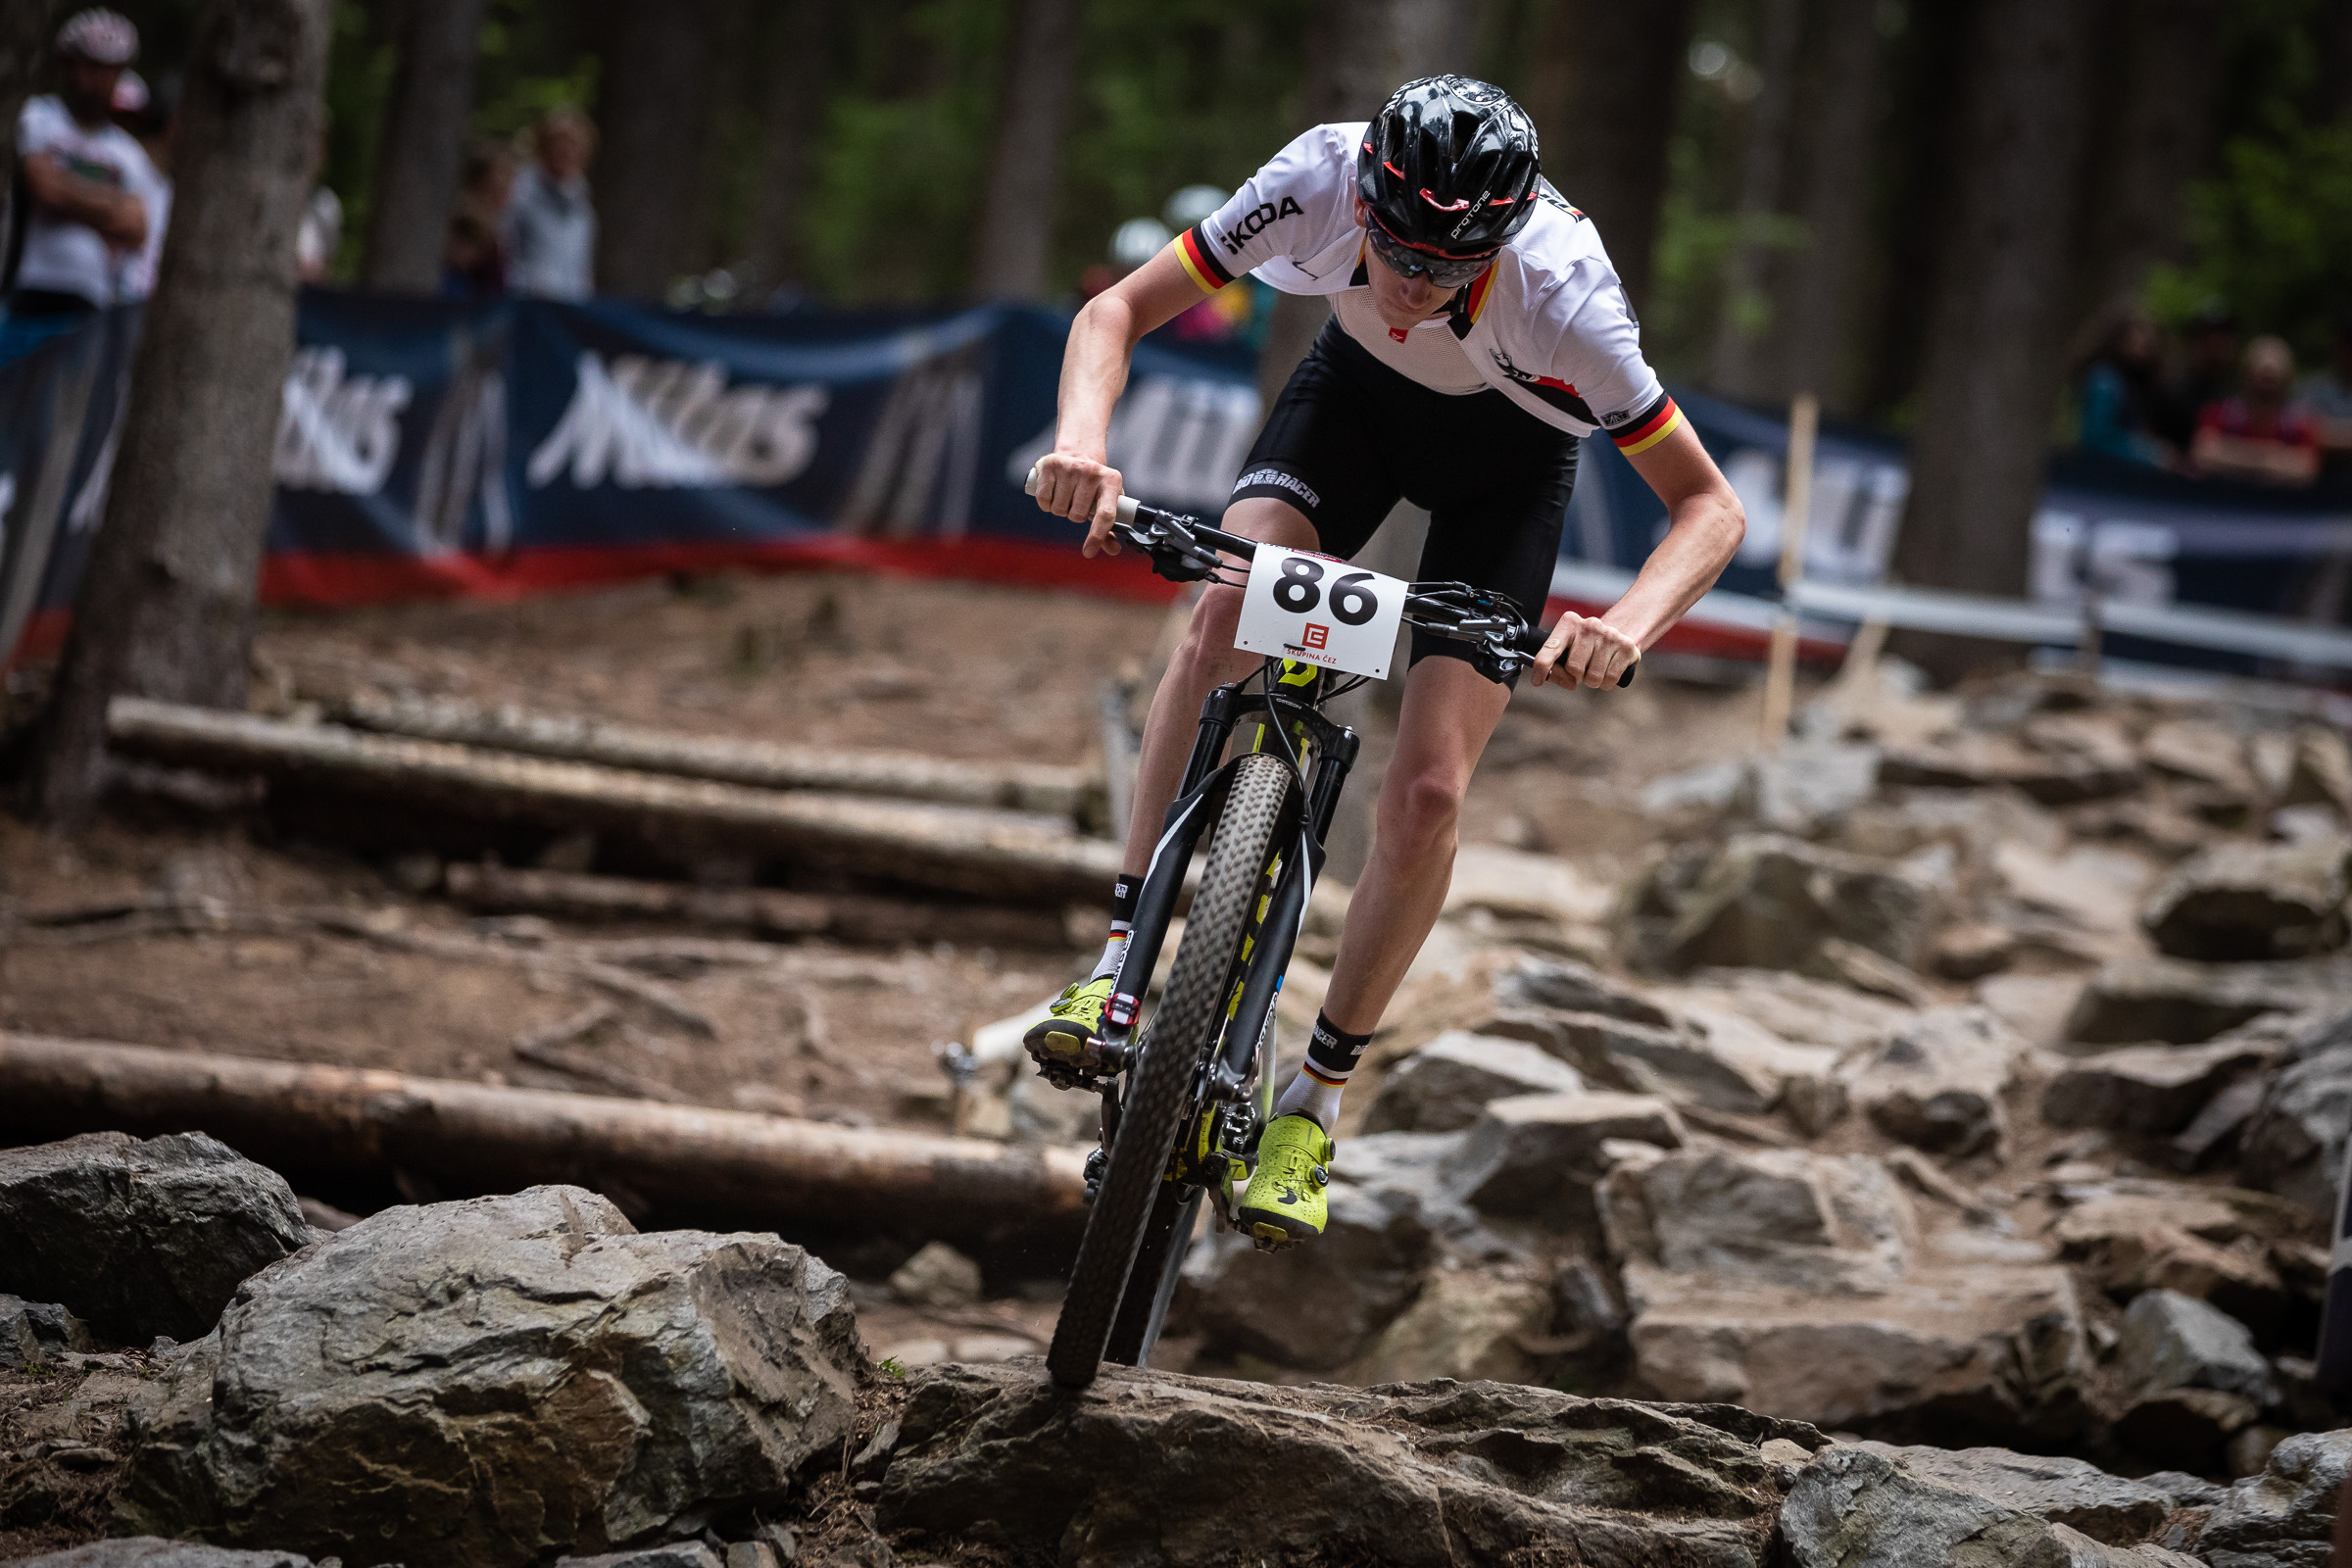 Free download high resolution image - free image free photo free stock image public domain picture -Mountain Bike Racing